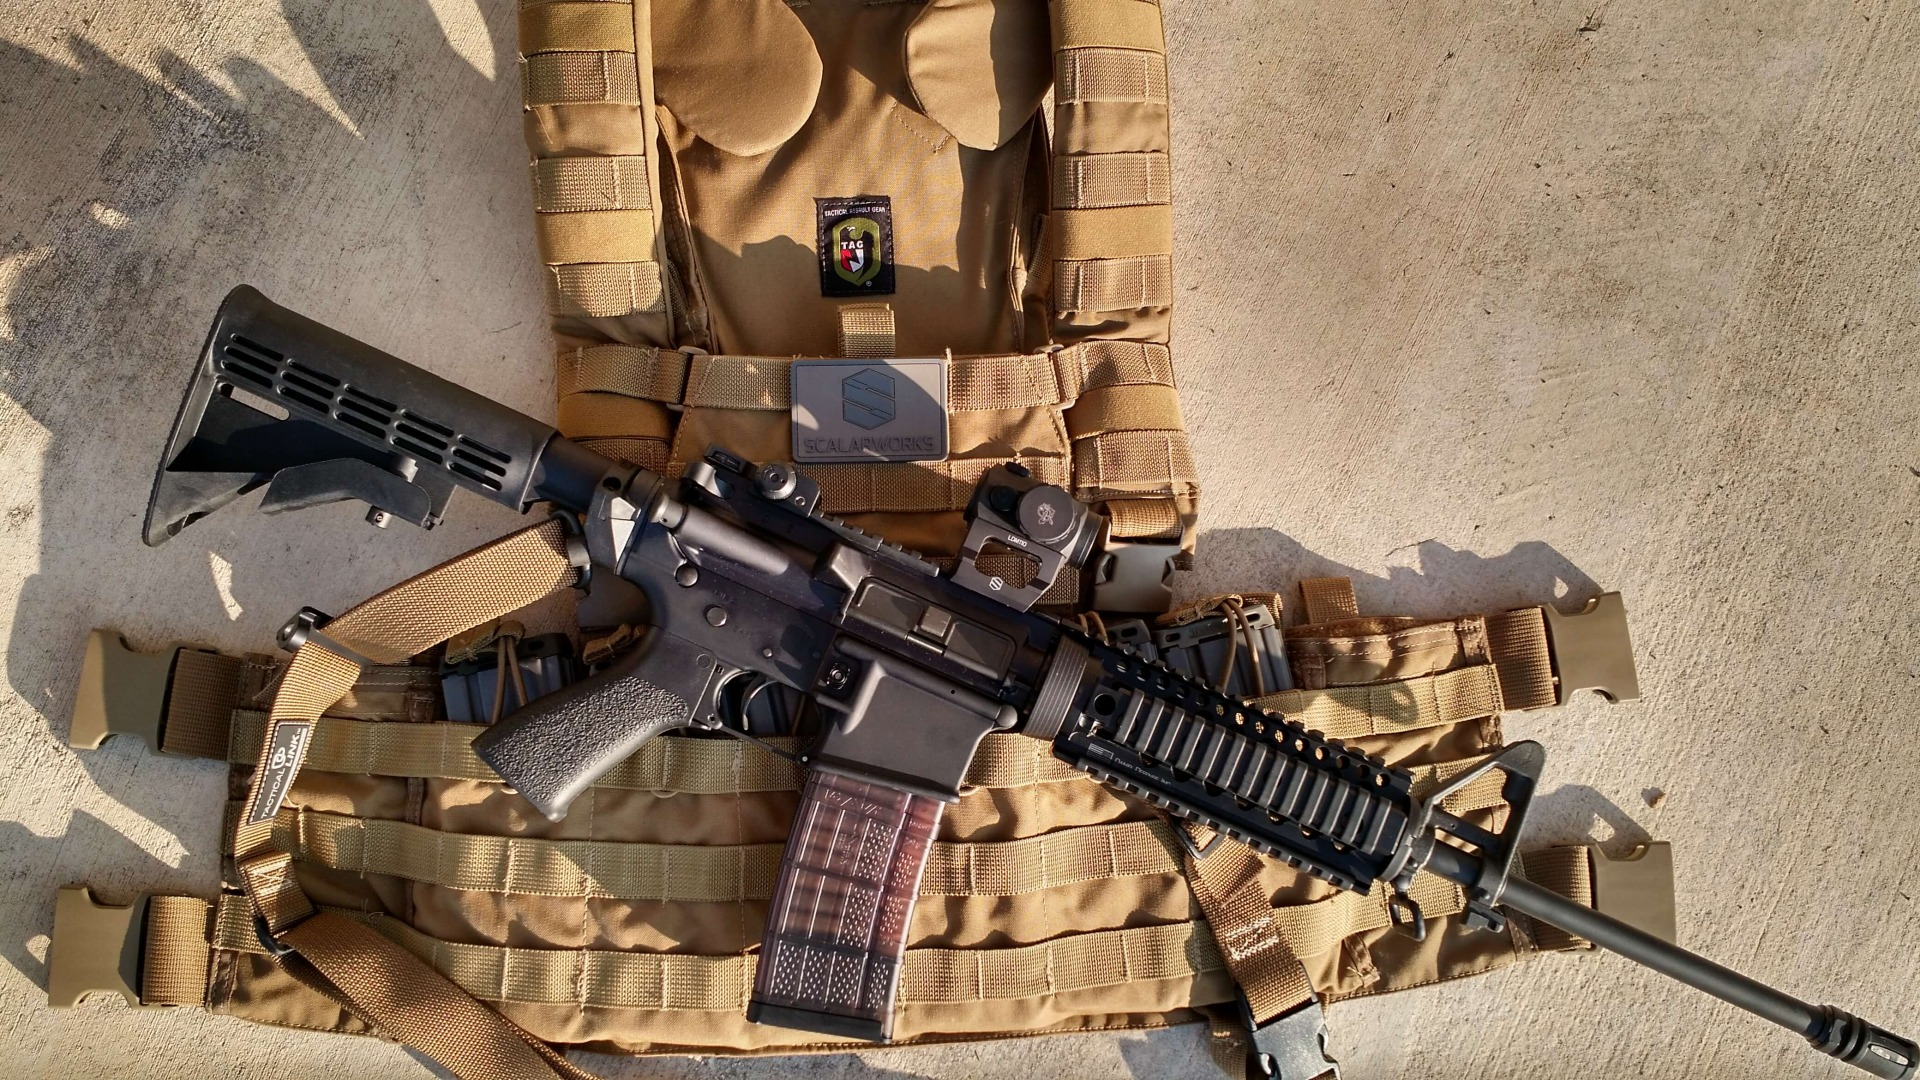 TAG Gladiator / Scalarwoks LDM & Patch / Colt AR6720